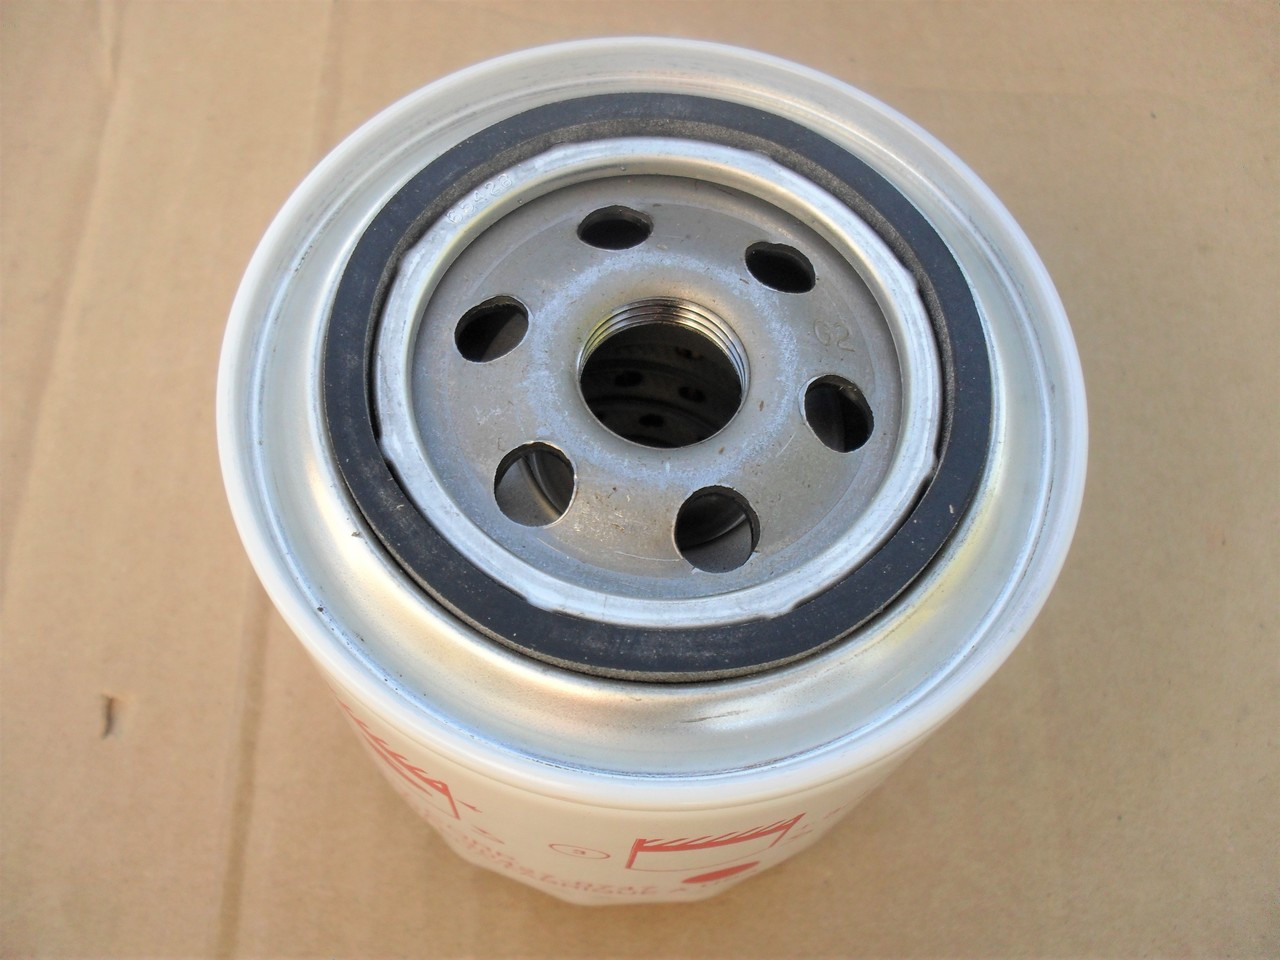 Transmission Oil Filter for Hitachi LX120, LX150 AM39653 Hydro, Made In USA